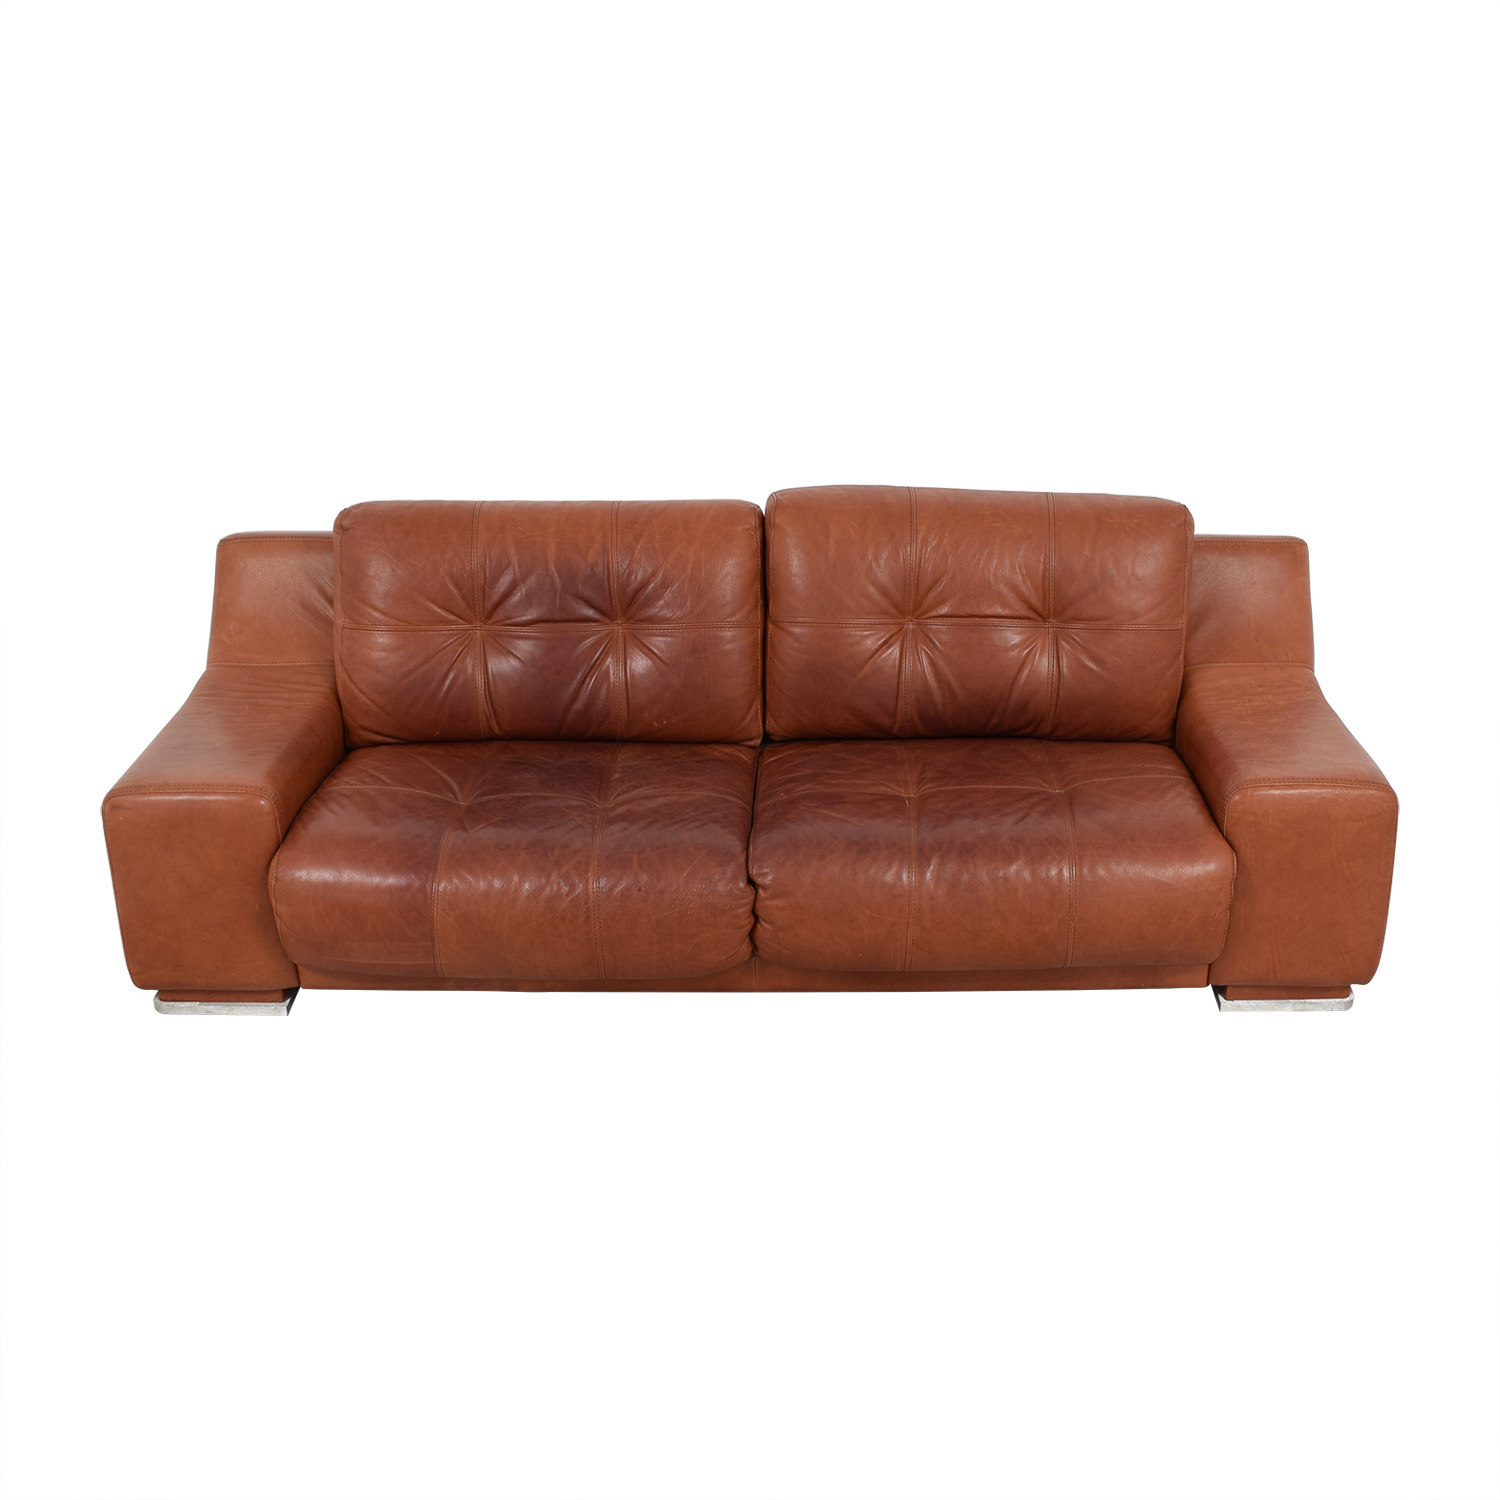 Contempo Contempo Leather Sofa discount